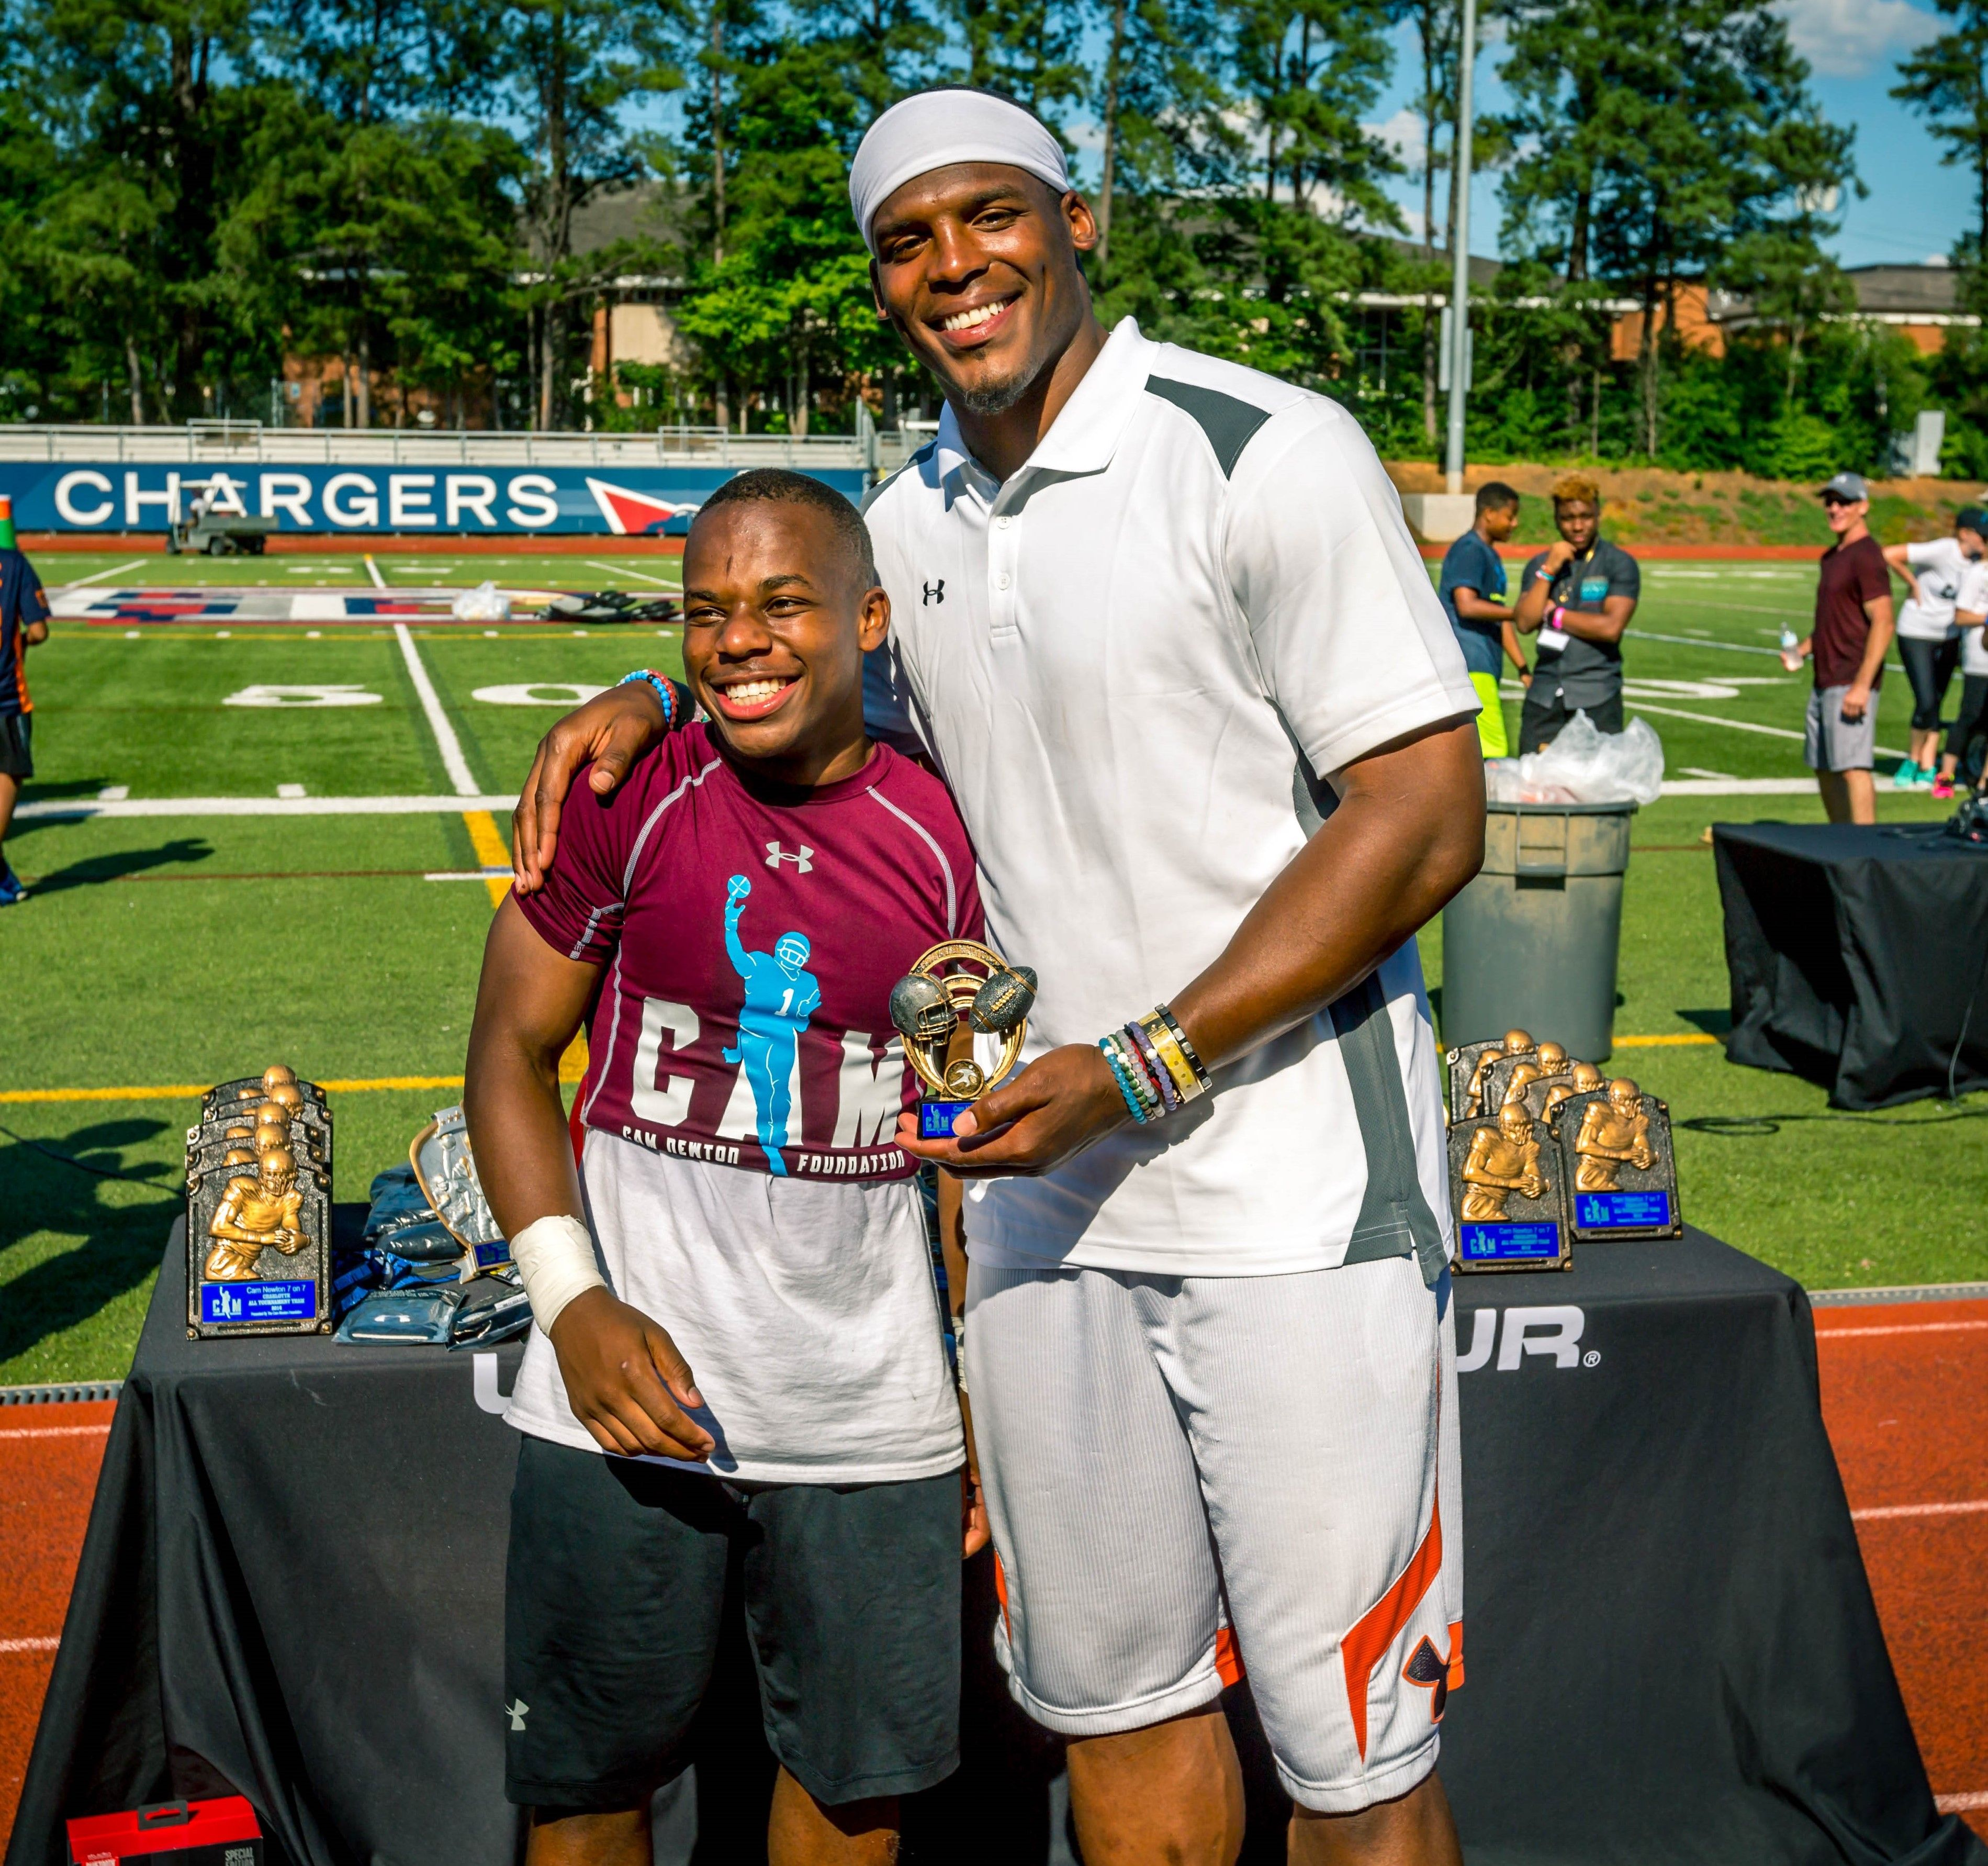 Cam Newton presenting a trophy to a child